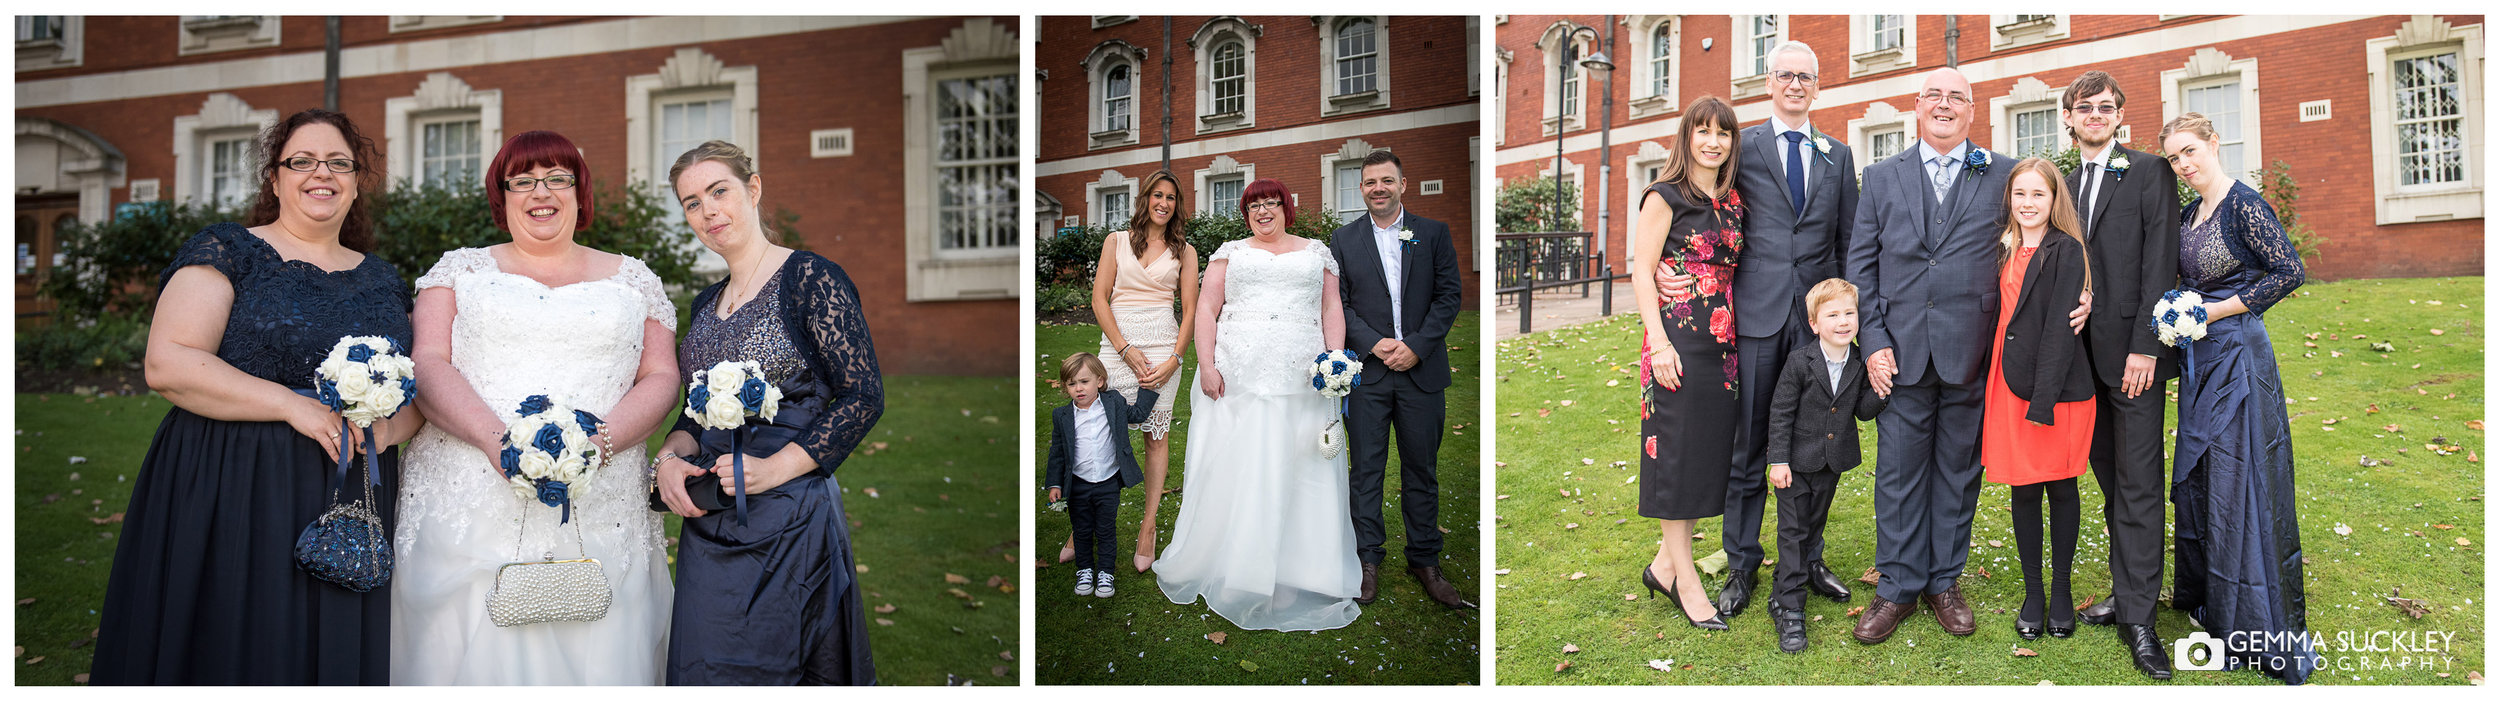 formal wedding photos outside Stockport townhall